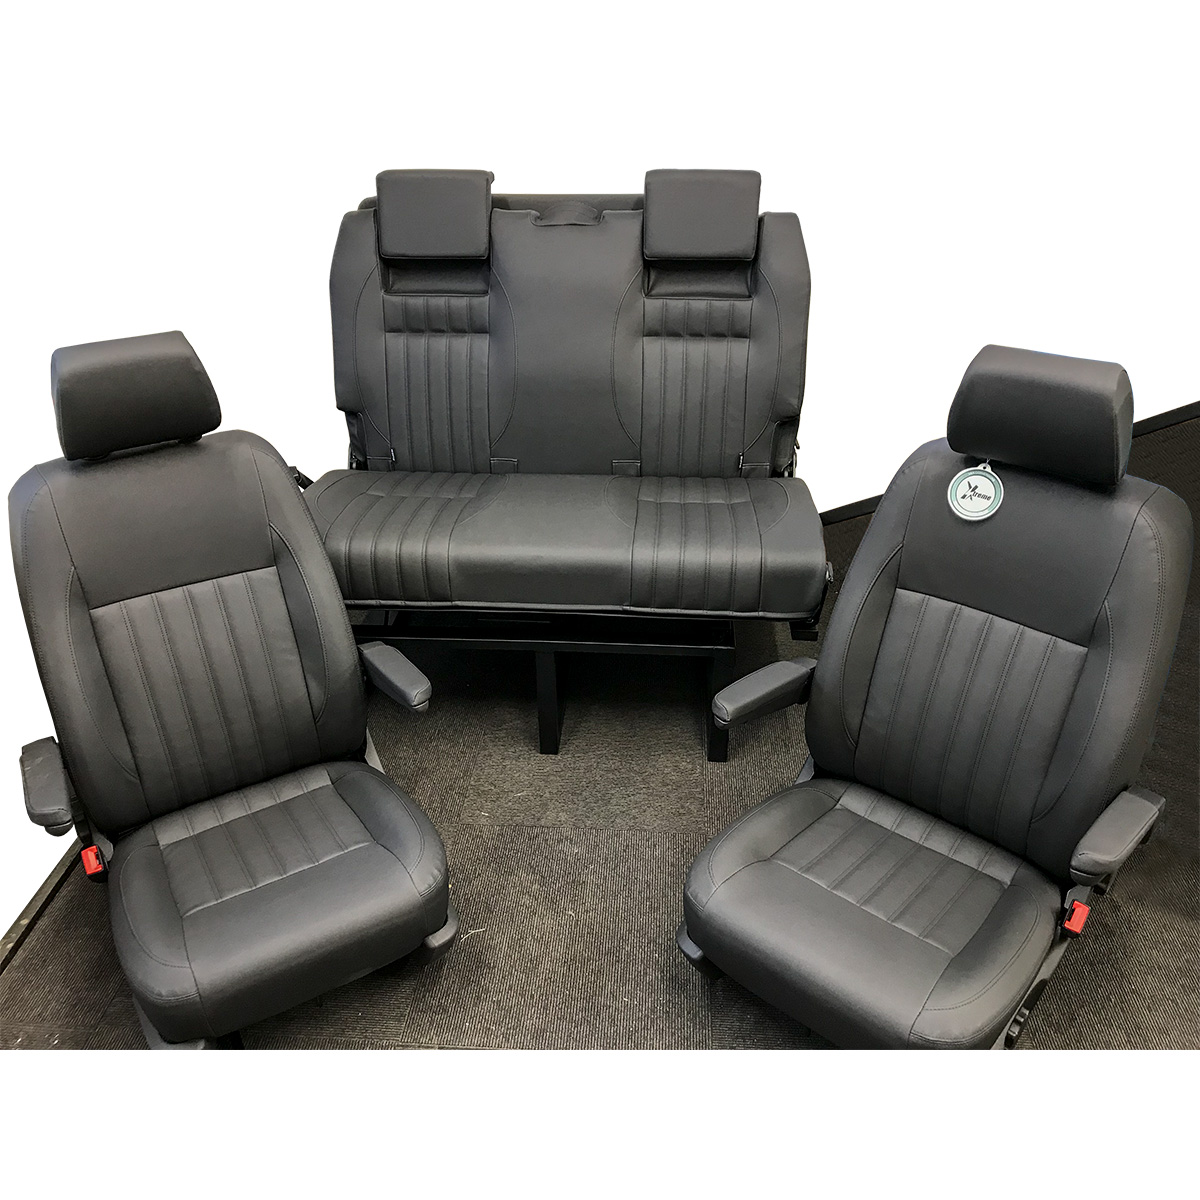 sofa upholsterers leicester pet protector for sectional 2 single front seats with arm and head rests a 3 4